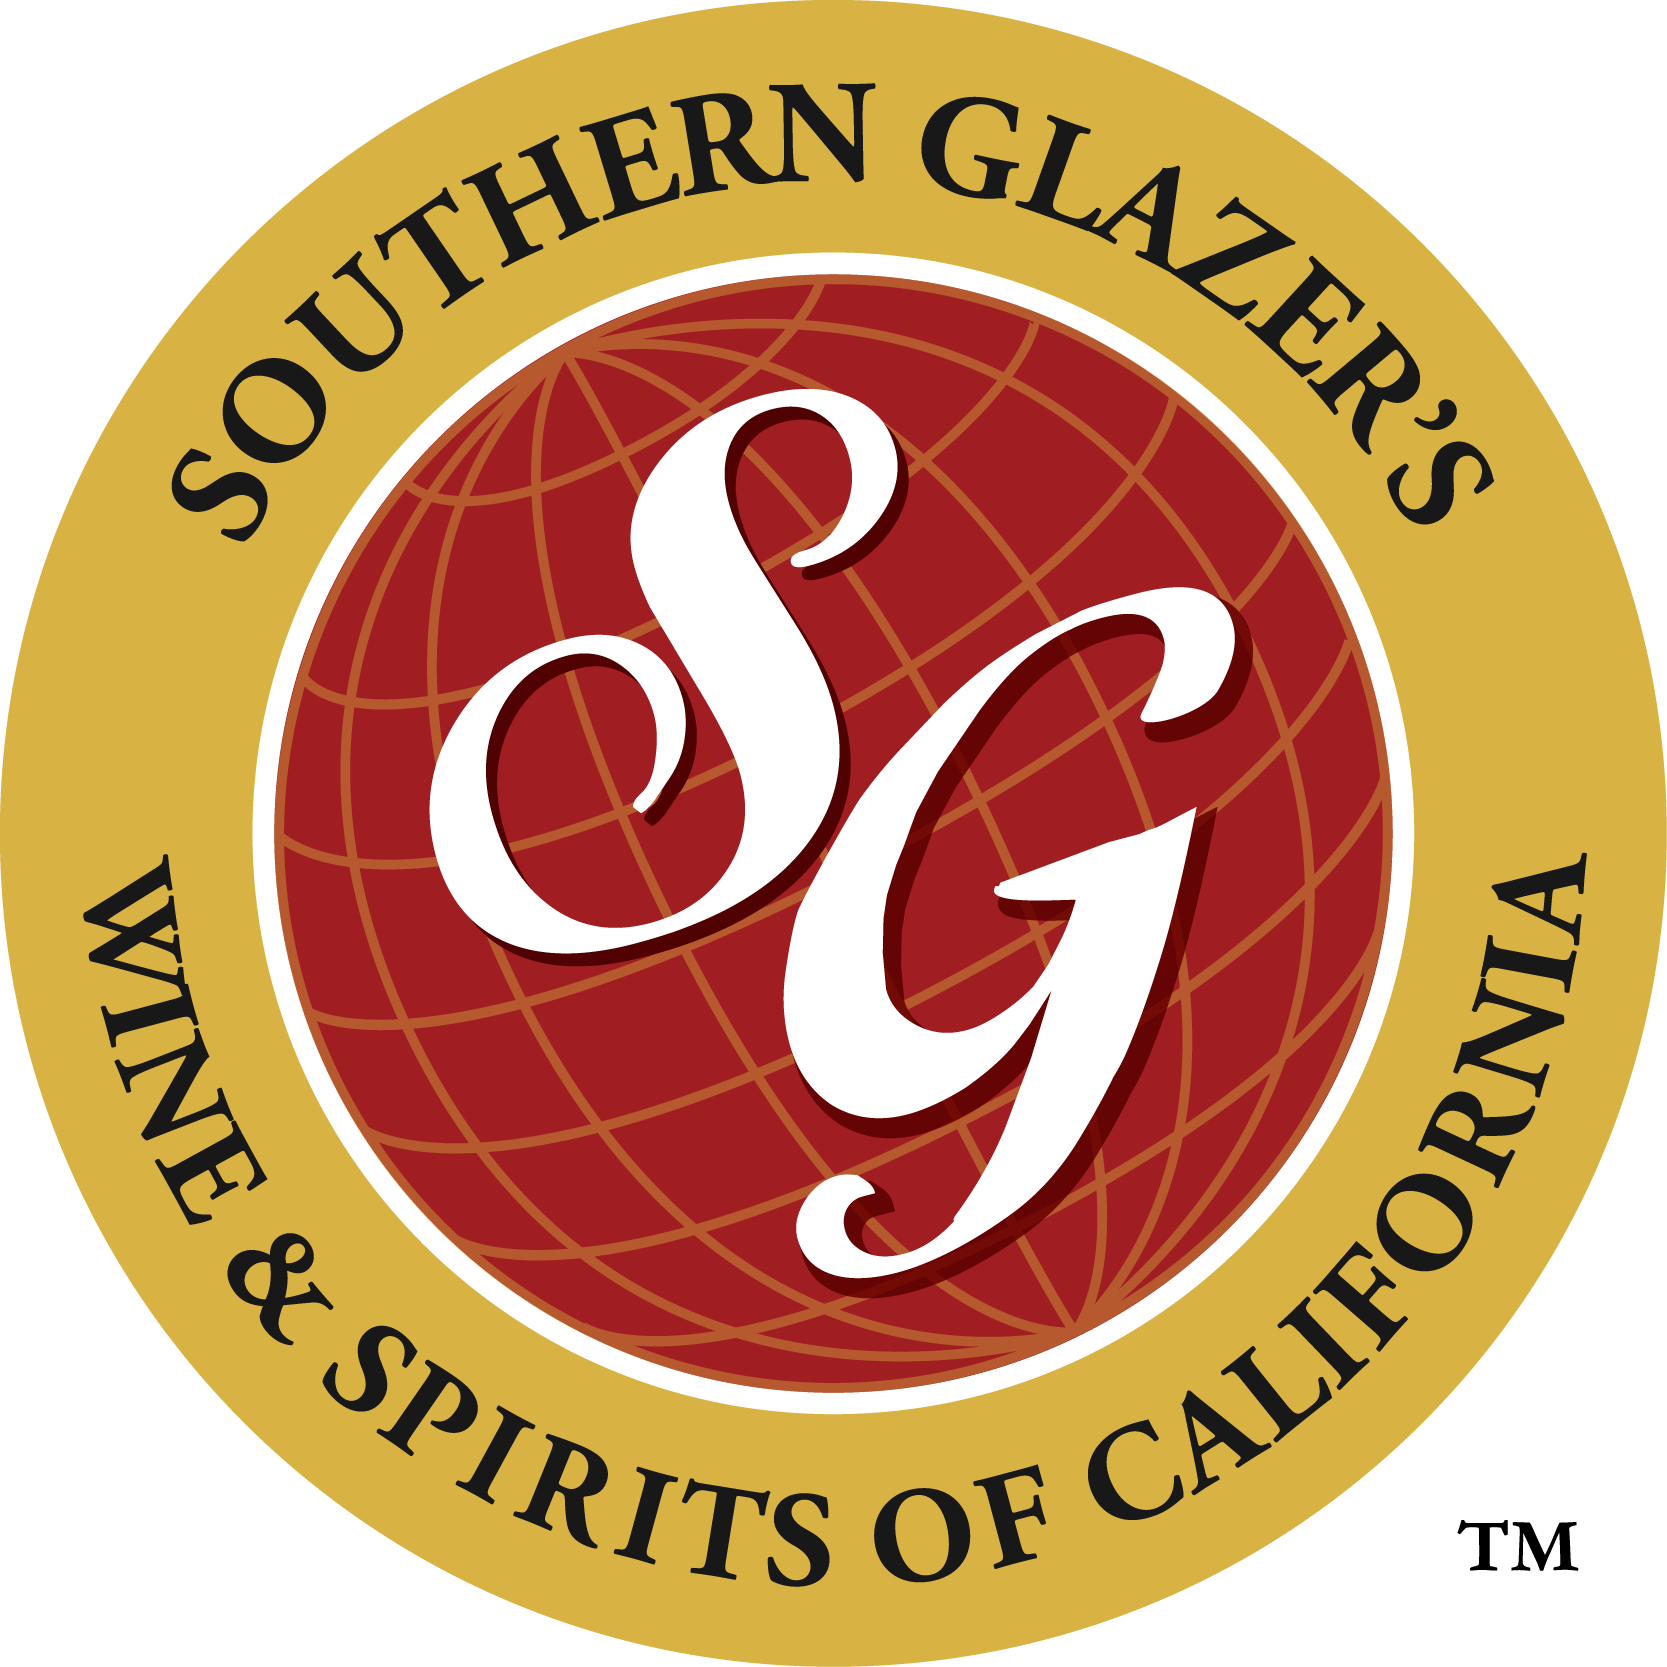 California_Southern Glazers_Seal